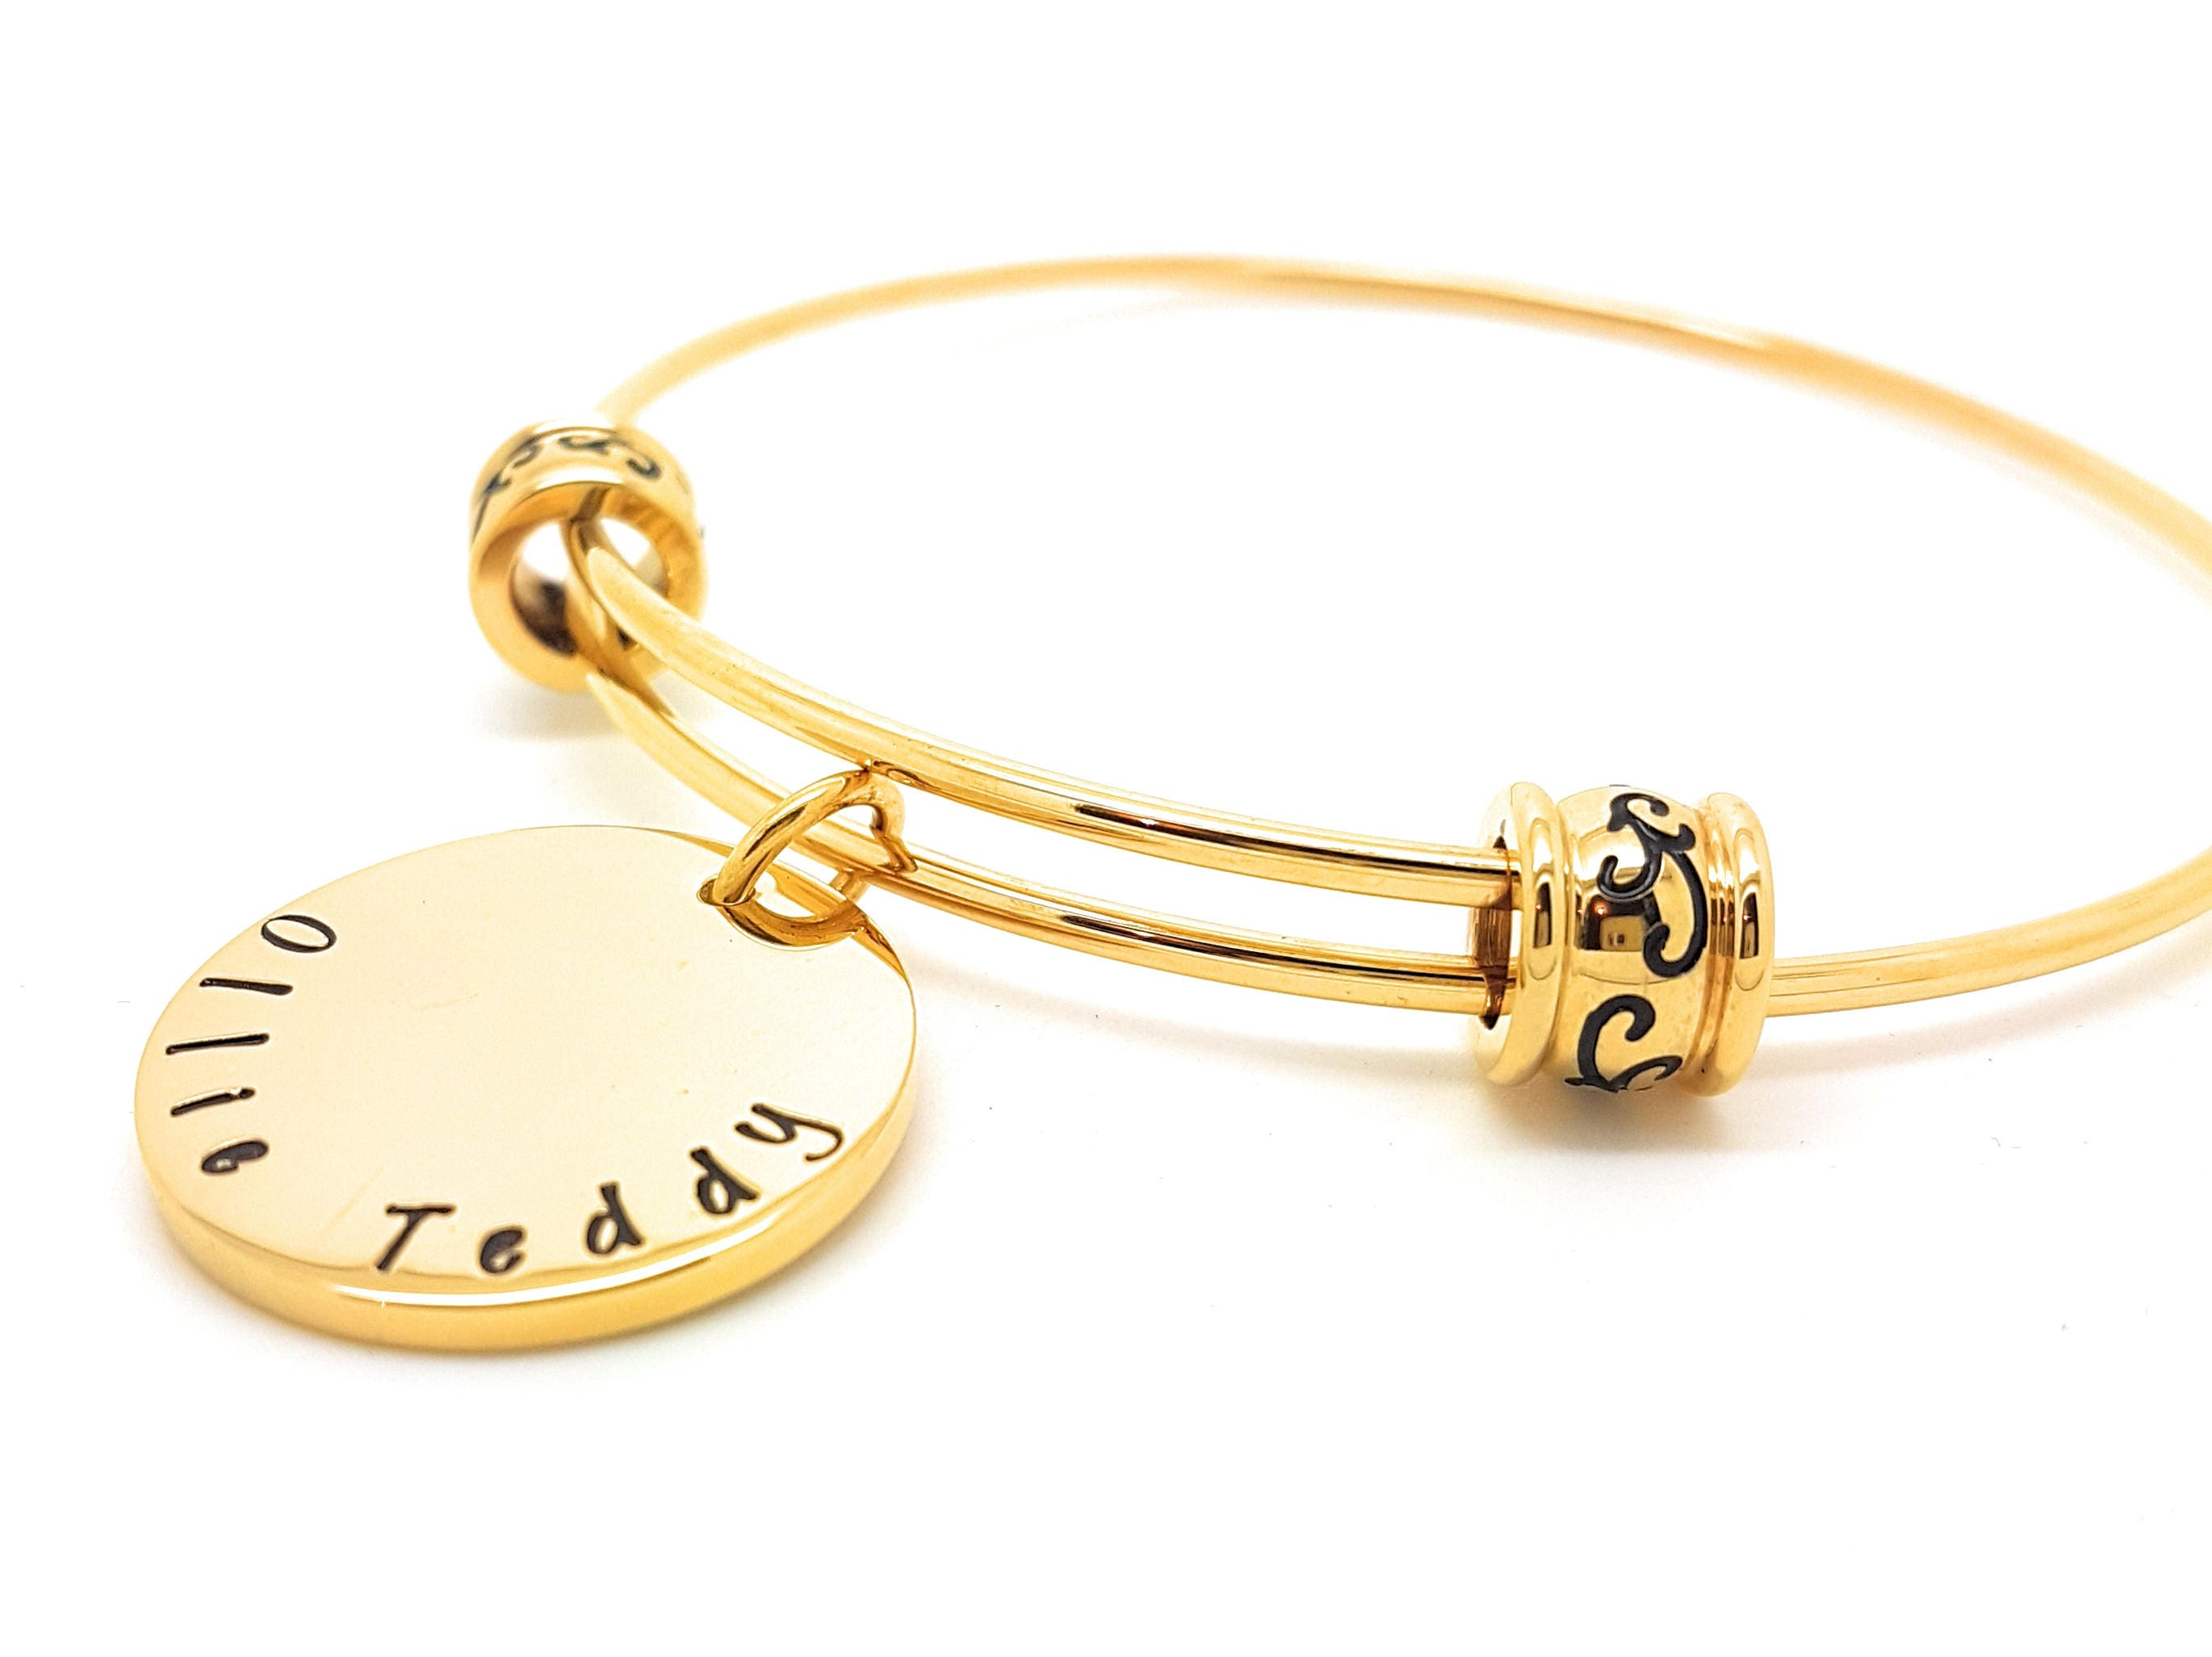 bangle ladies bangles heart charm tennis round cut bracelets pin simulated cz gold bracelet tone design link